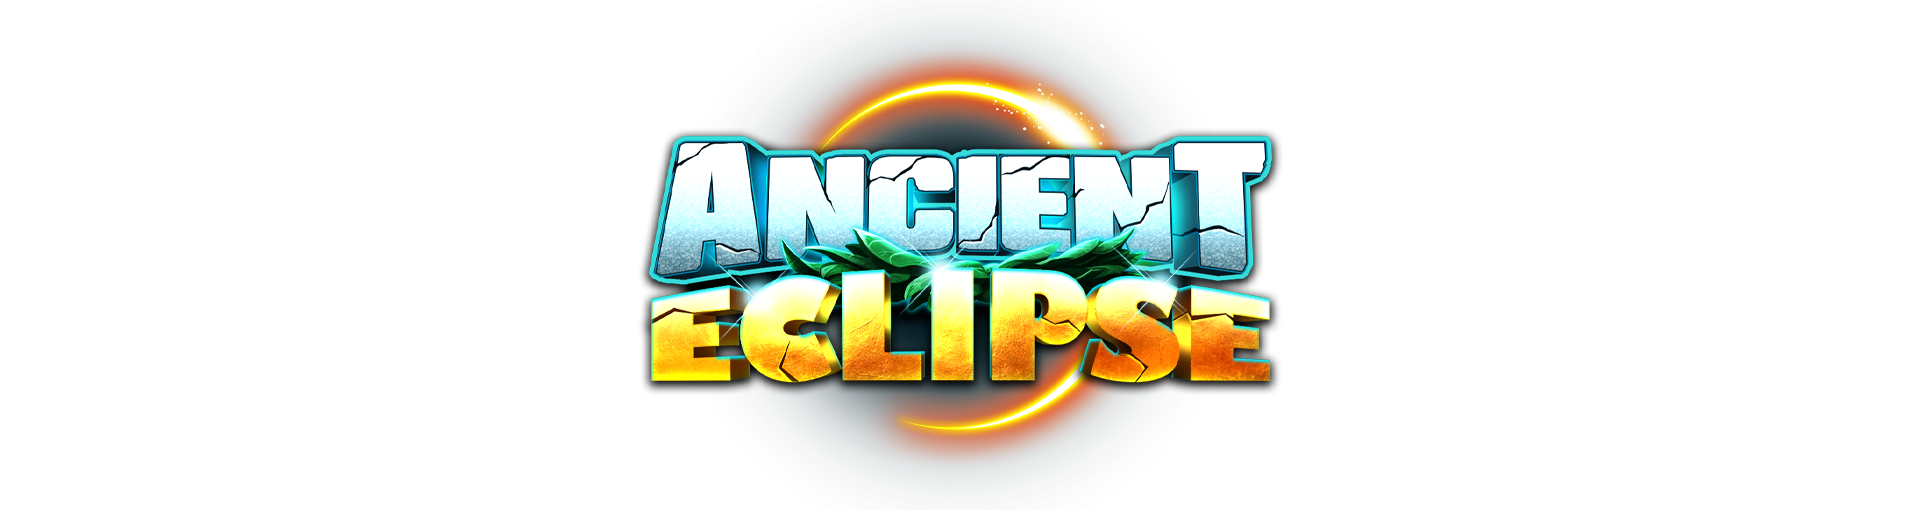 ancient_eclipse_Yggdrasil-UpcomingGame-Logo-Template-1920x510px